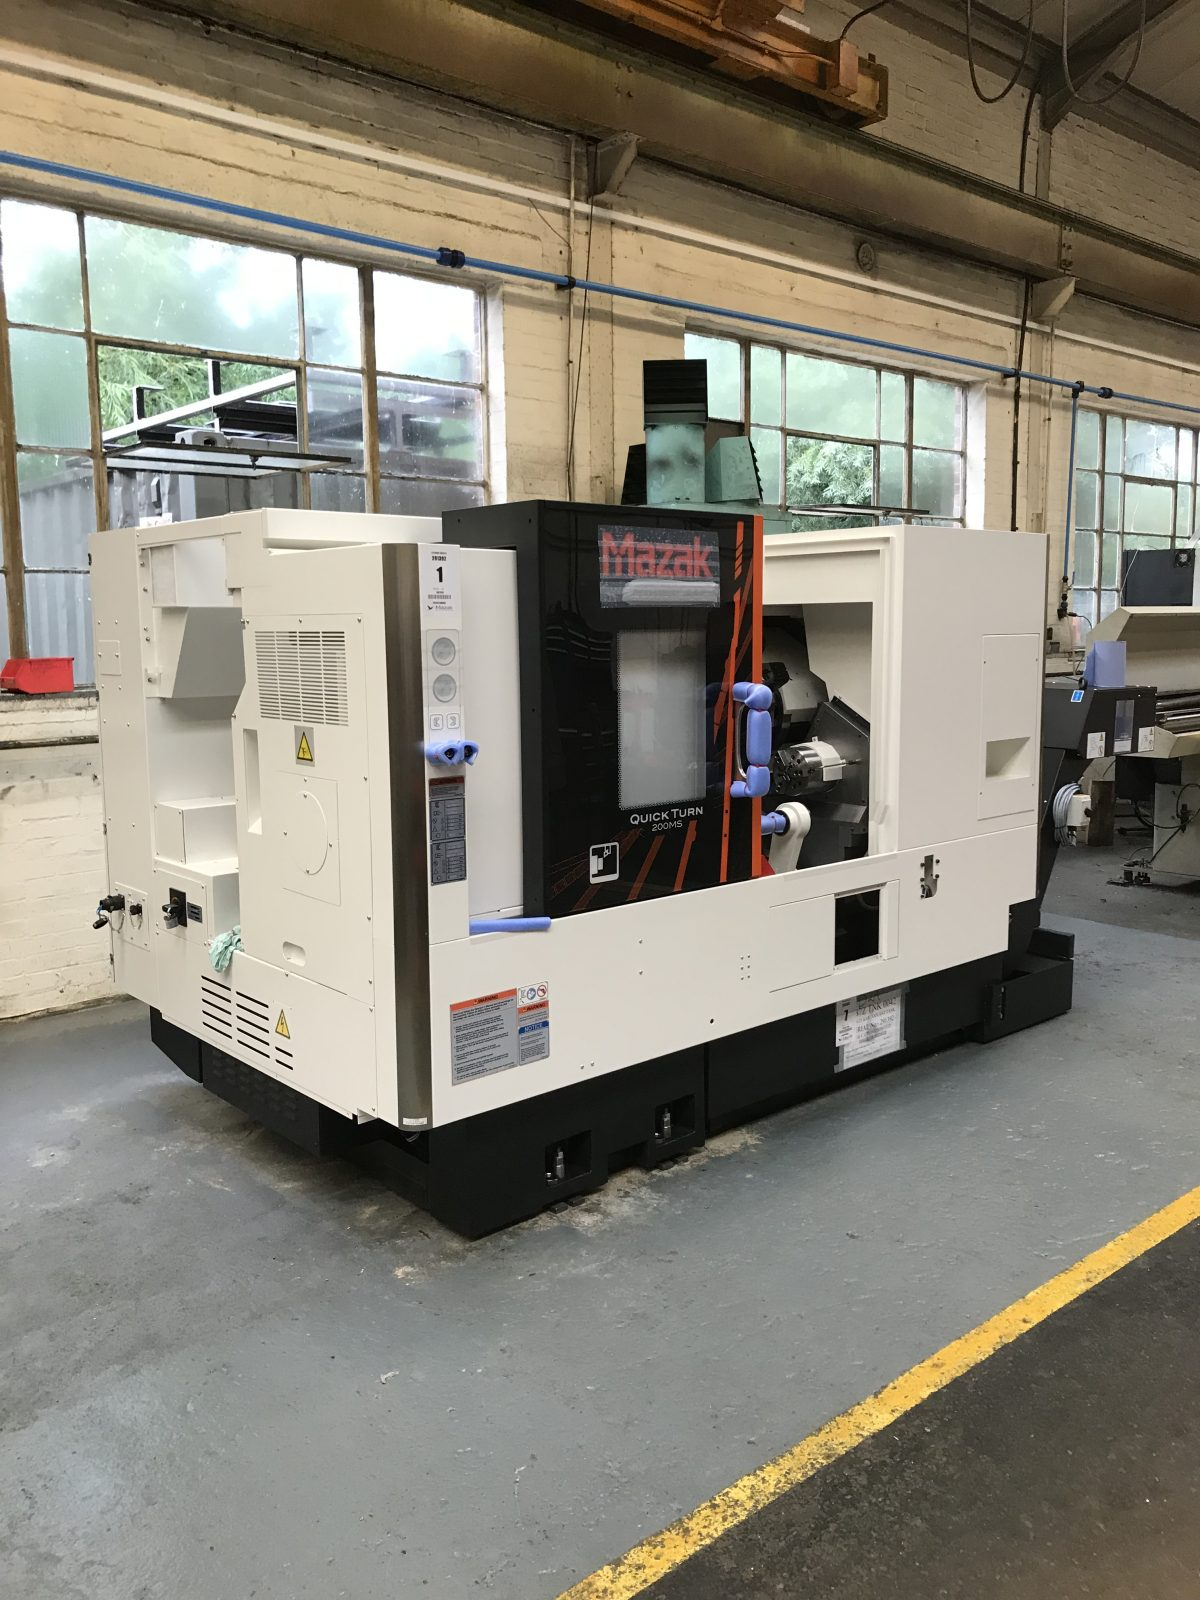 The new Mazak Machine has arrived at Central Engineering Services in Worcester. The new machine is a twin spindle quick turn 200MS and can create in no time at all. Take a look at our engineering capacity by clicking here.